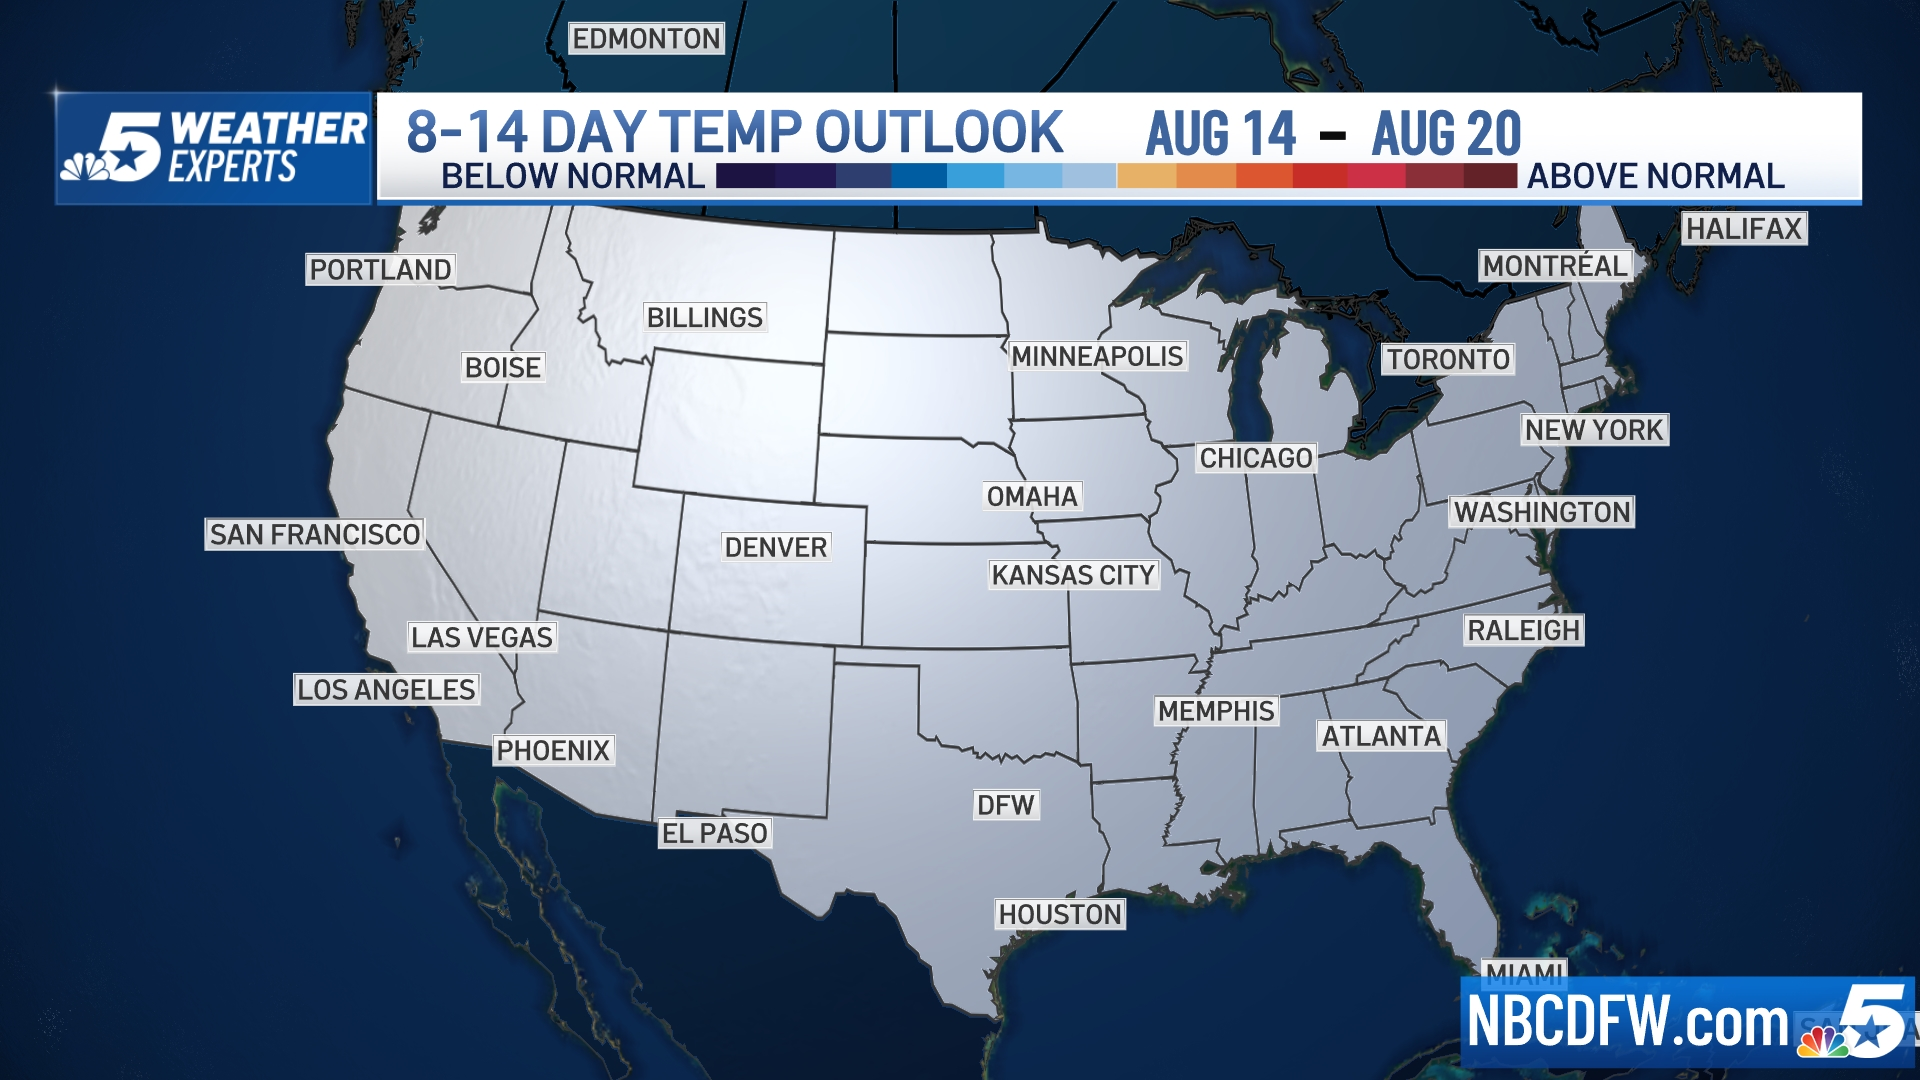 8 to 14 Day Outlook - Temperature